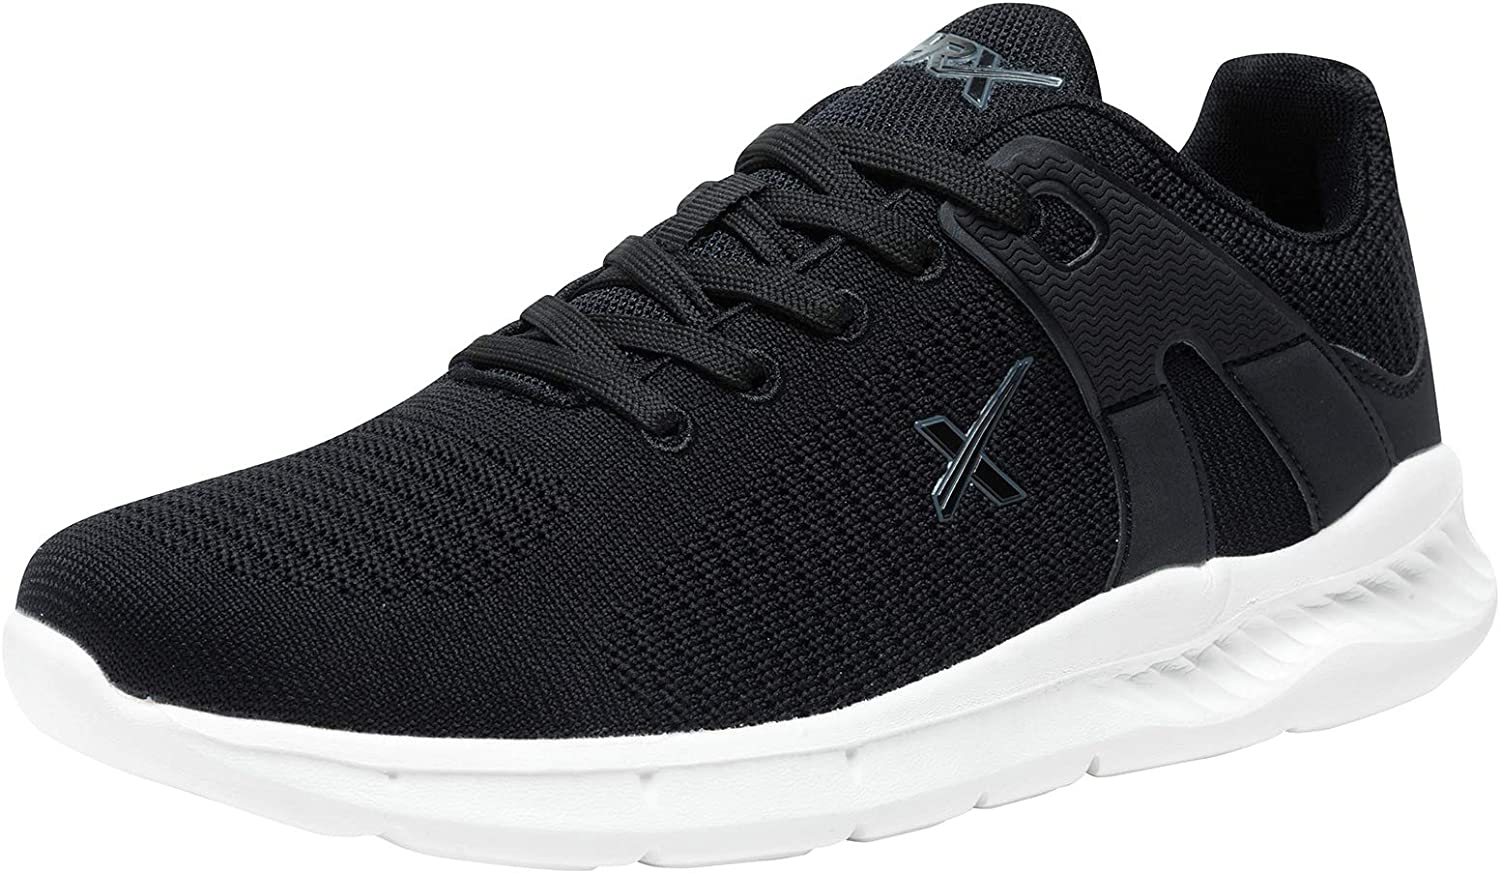 HRX Men s Casual Sport Sneakers Mesh Breathable Athletic Walking Running Gym Lace-up Shoes Cross Trainer